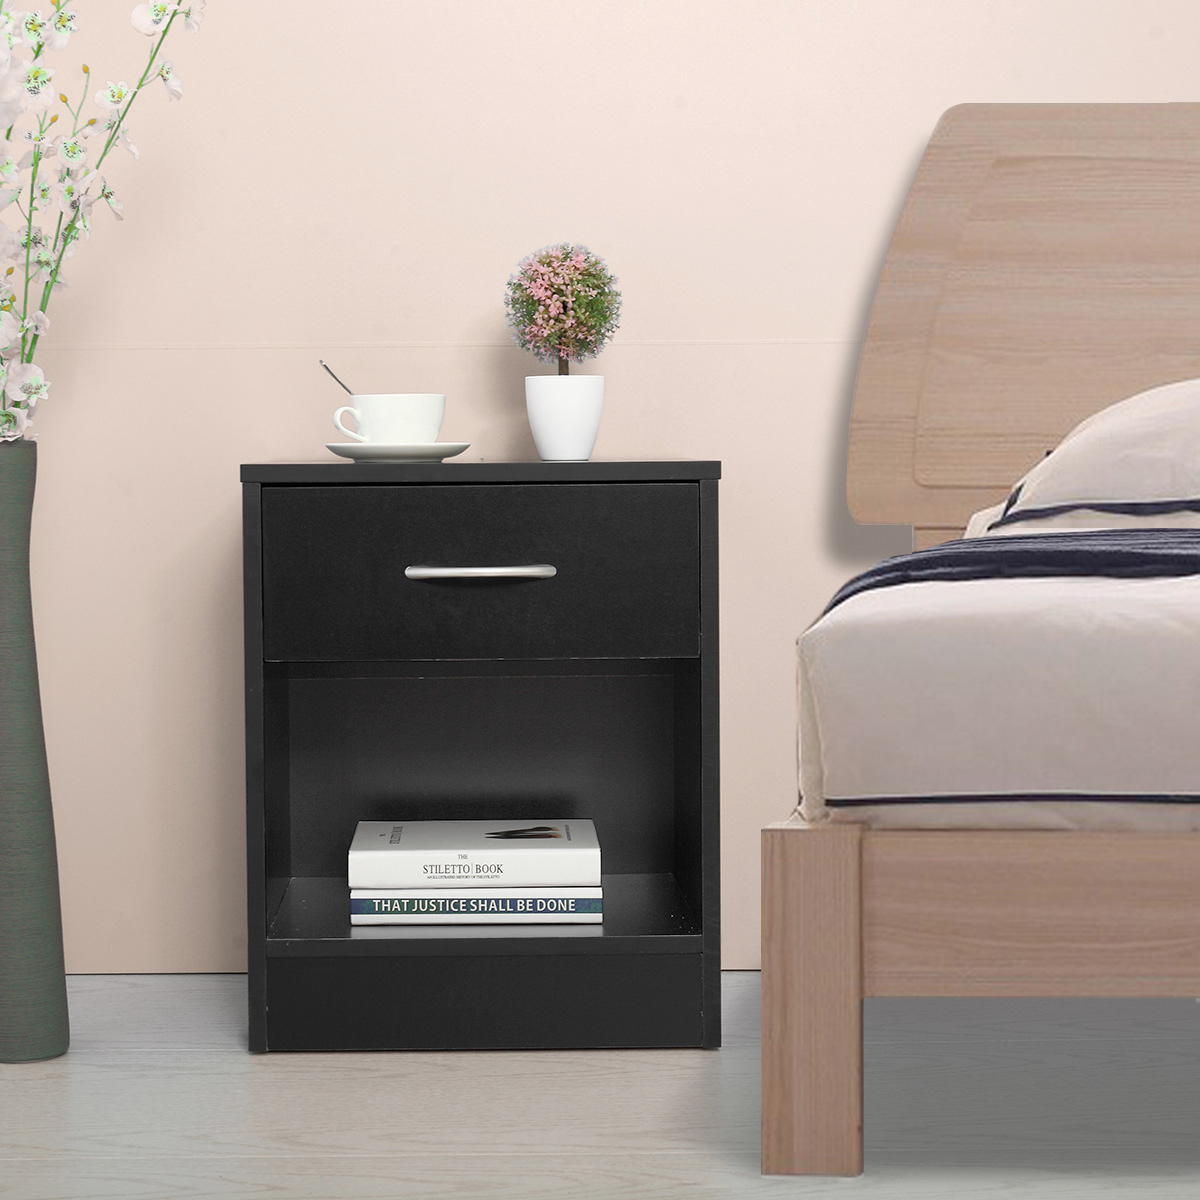 Jaxpety Black Nightstand 2 Layer Bedside End Table Bedroom Organizer Furniture